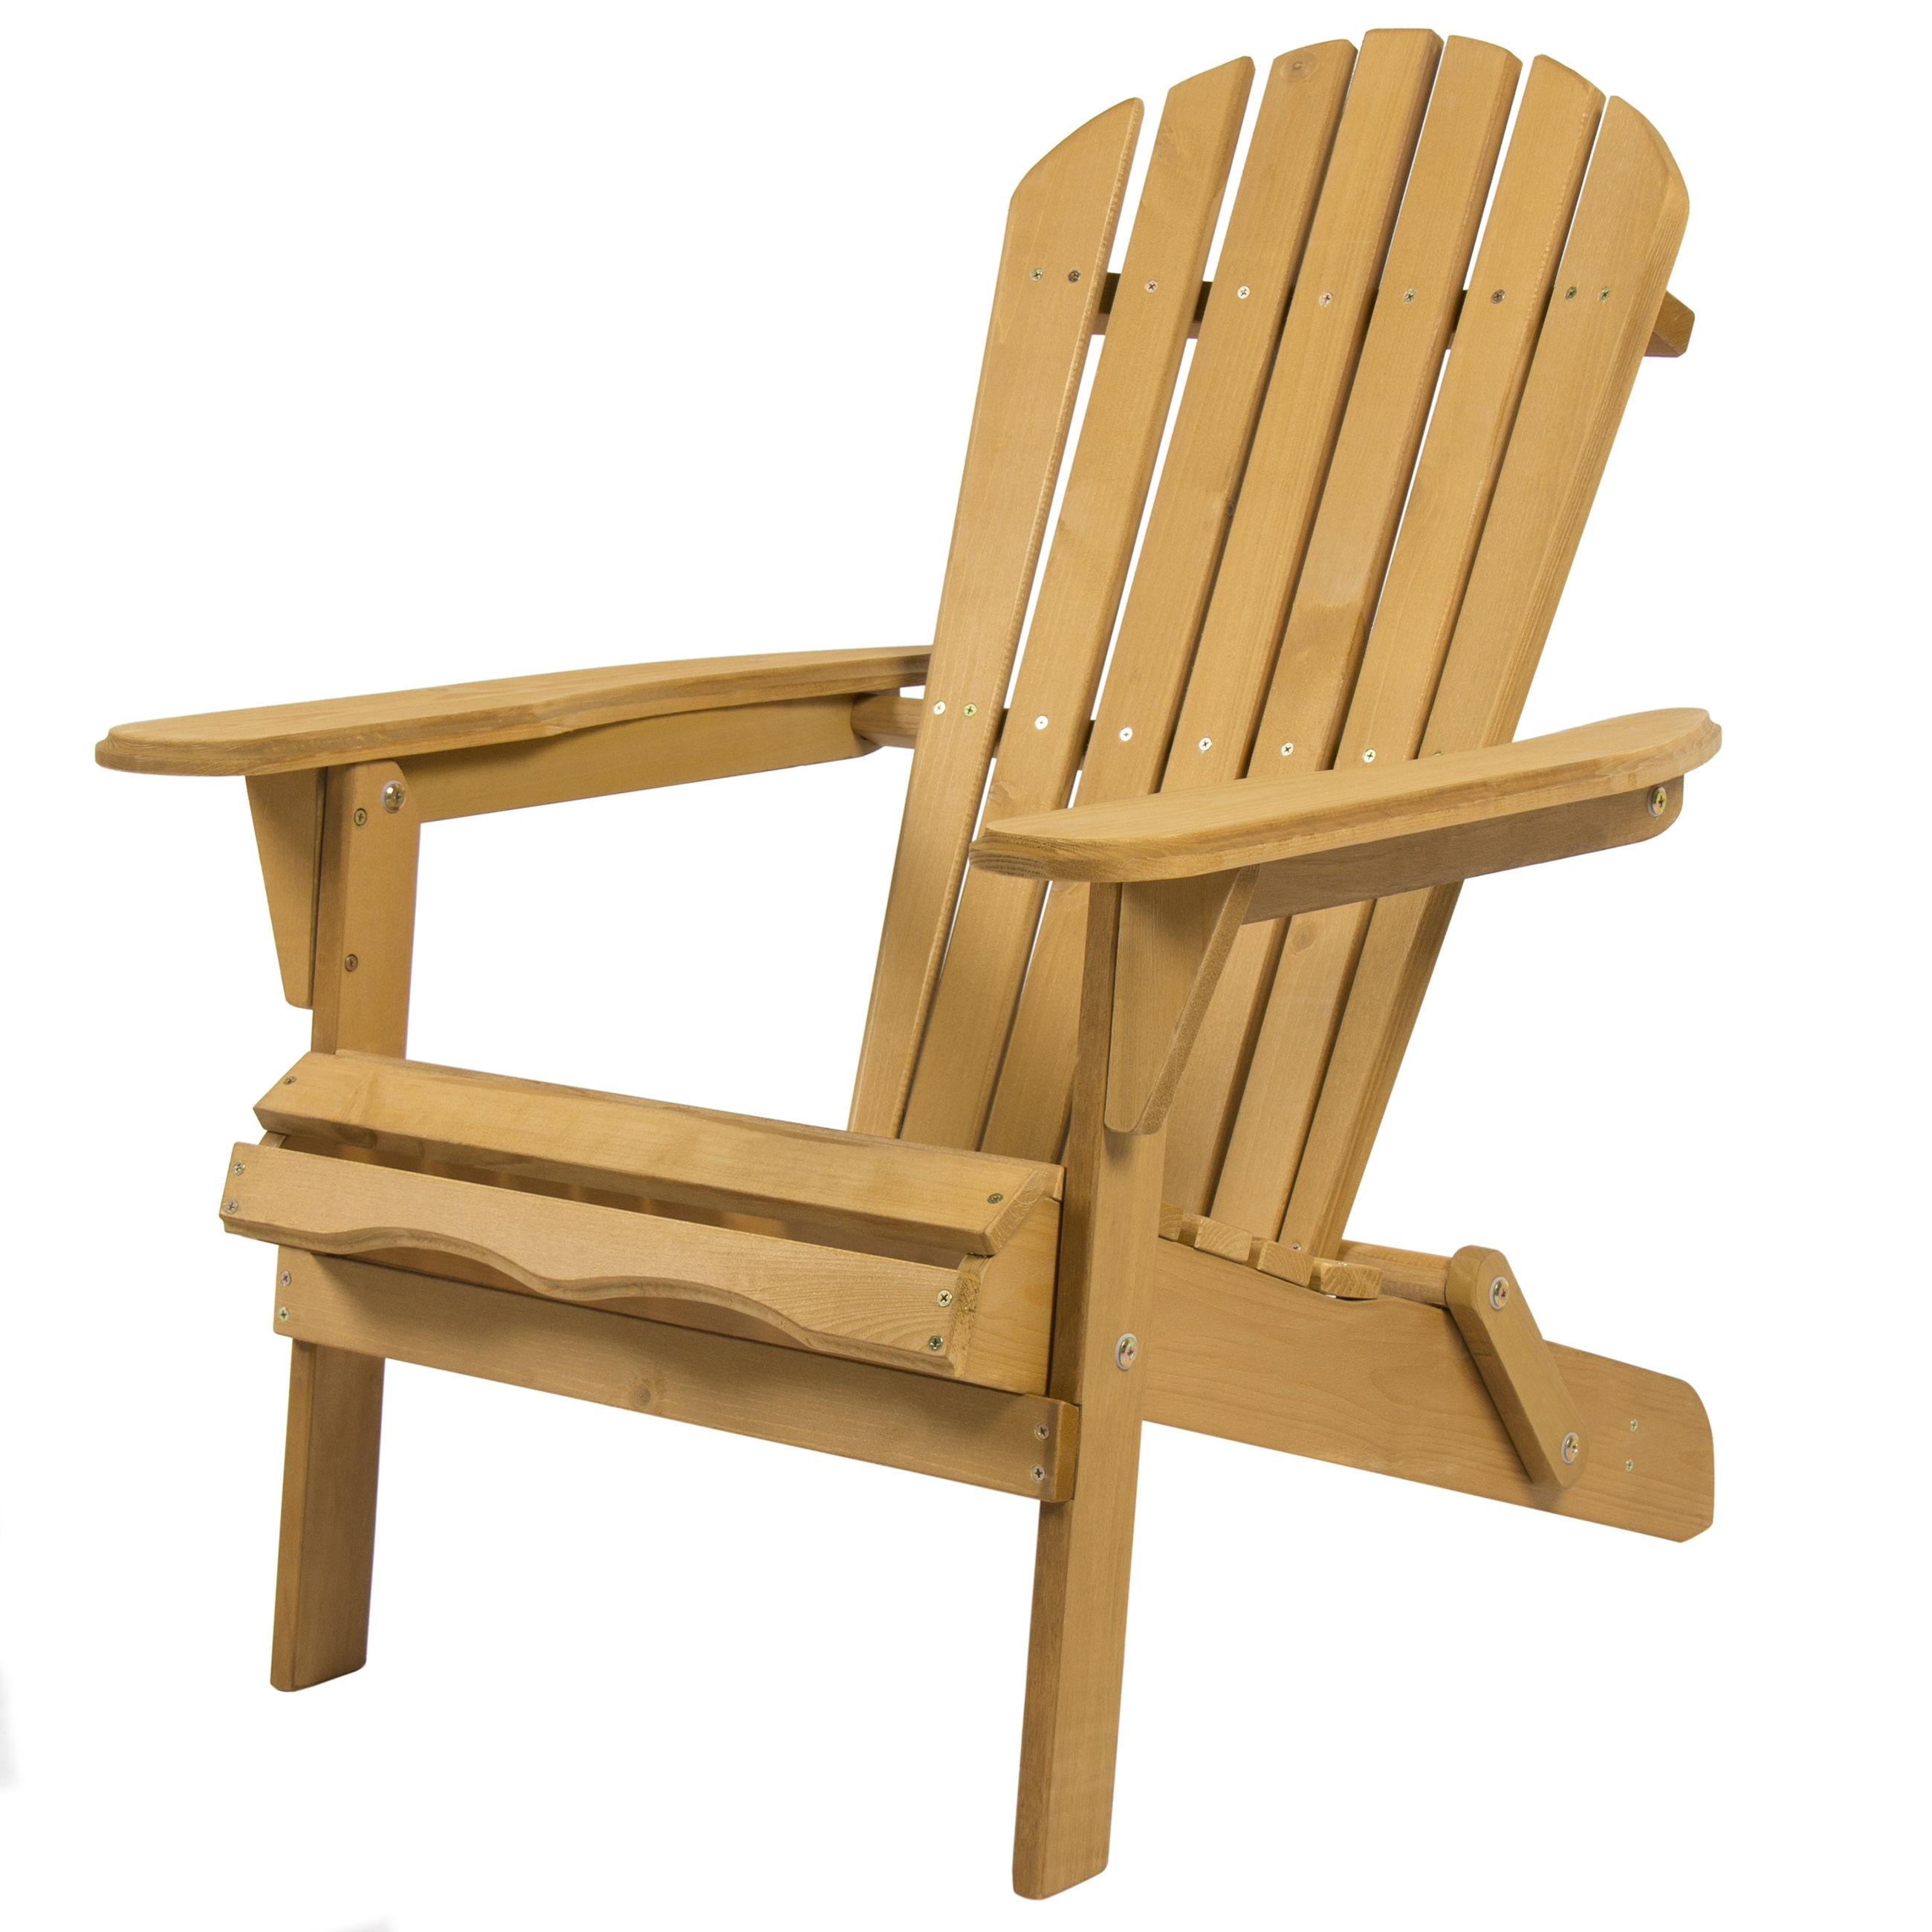 Exquisite Outdoor Wood Adirondack Chair Foldable Patio Lawn Deck In Most Recently Released Children's Outdoor Chaise Lounge Chairs (Gallery 5 of 15)